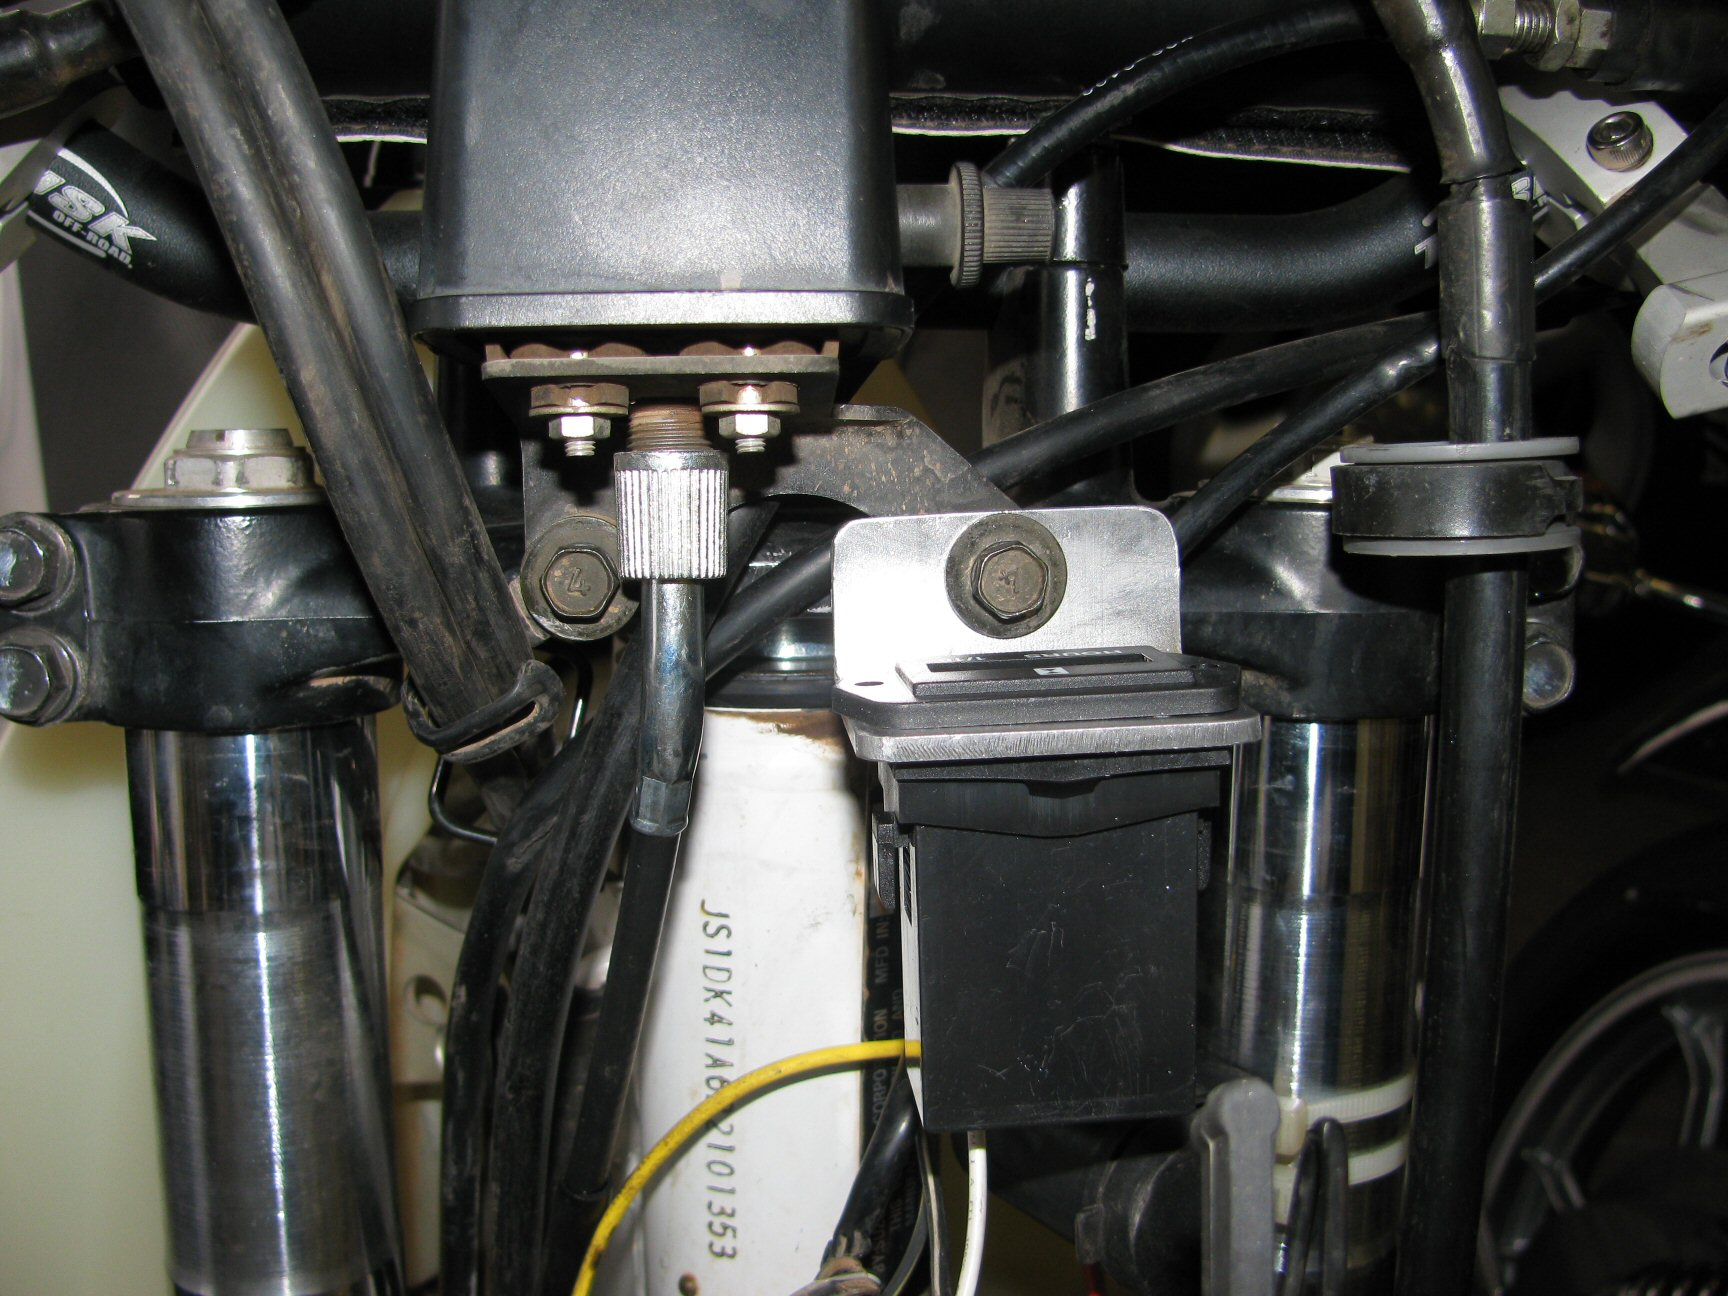 Pro Power Hour Meter installed on a 1993 Suzuki DR350 dirt motorcycle.